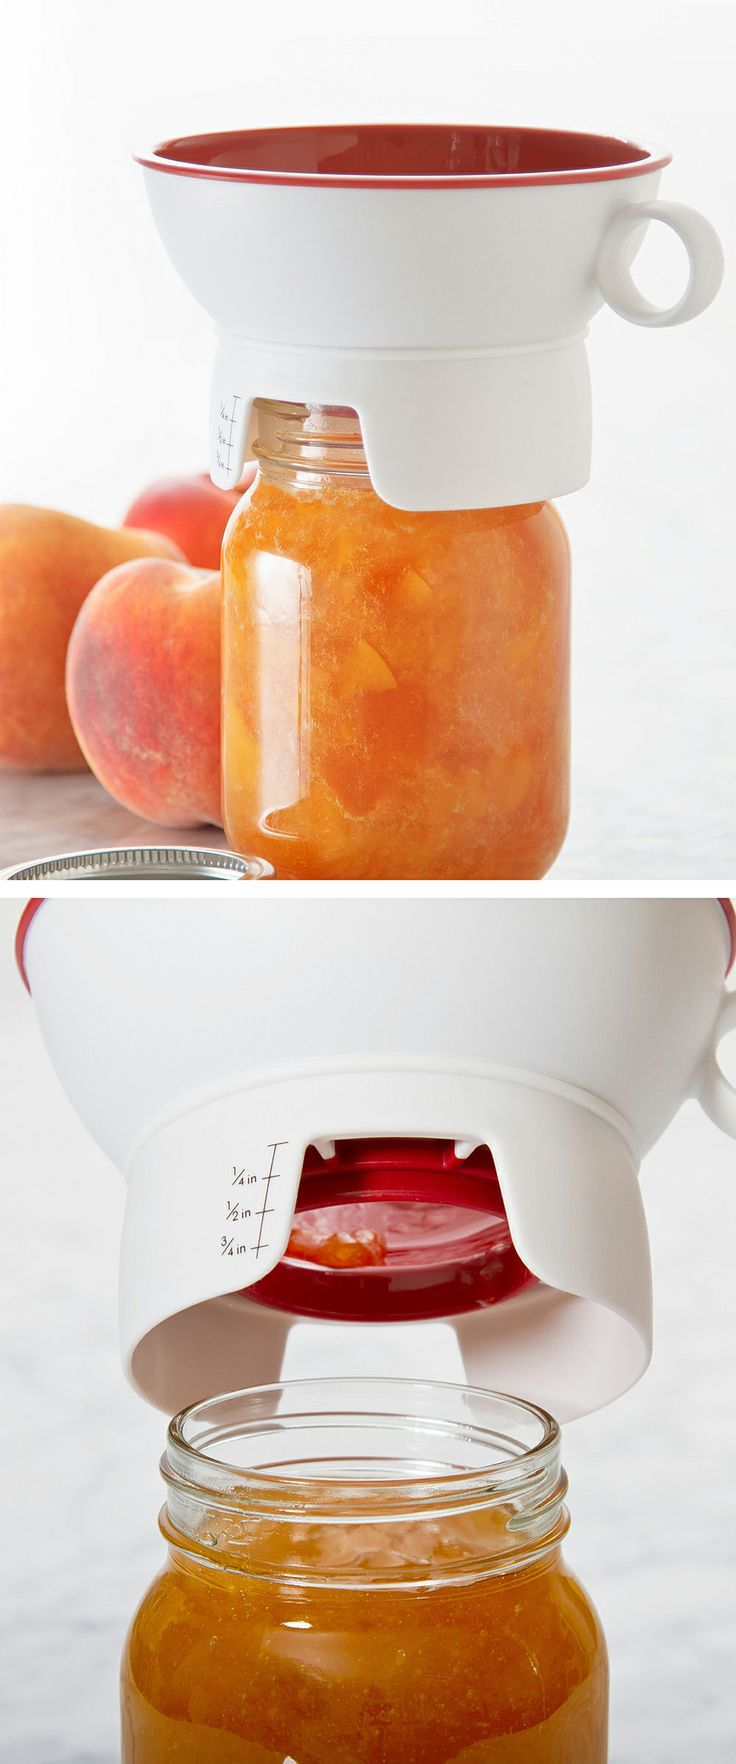 559 best cool kitchen gadgets images on pinterest kitchen